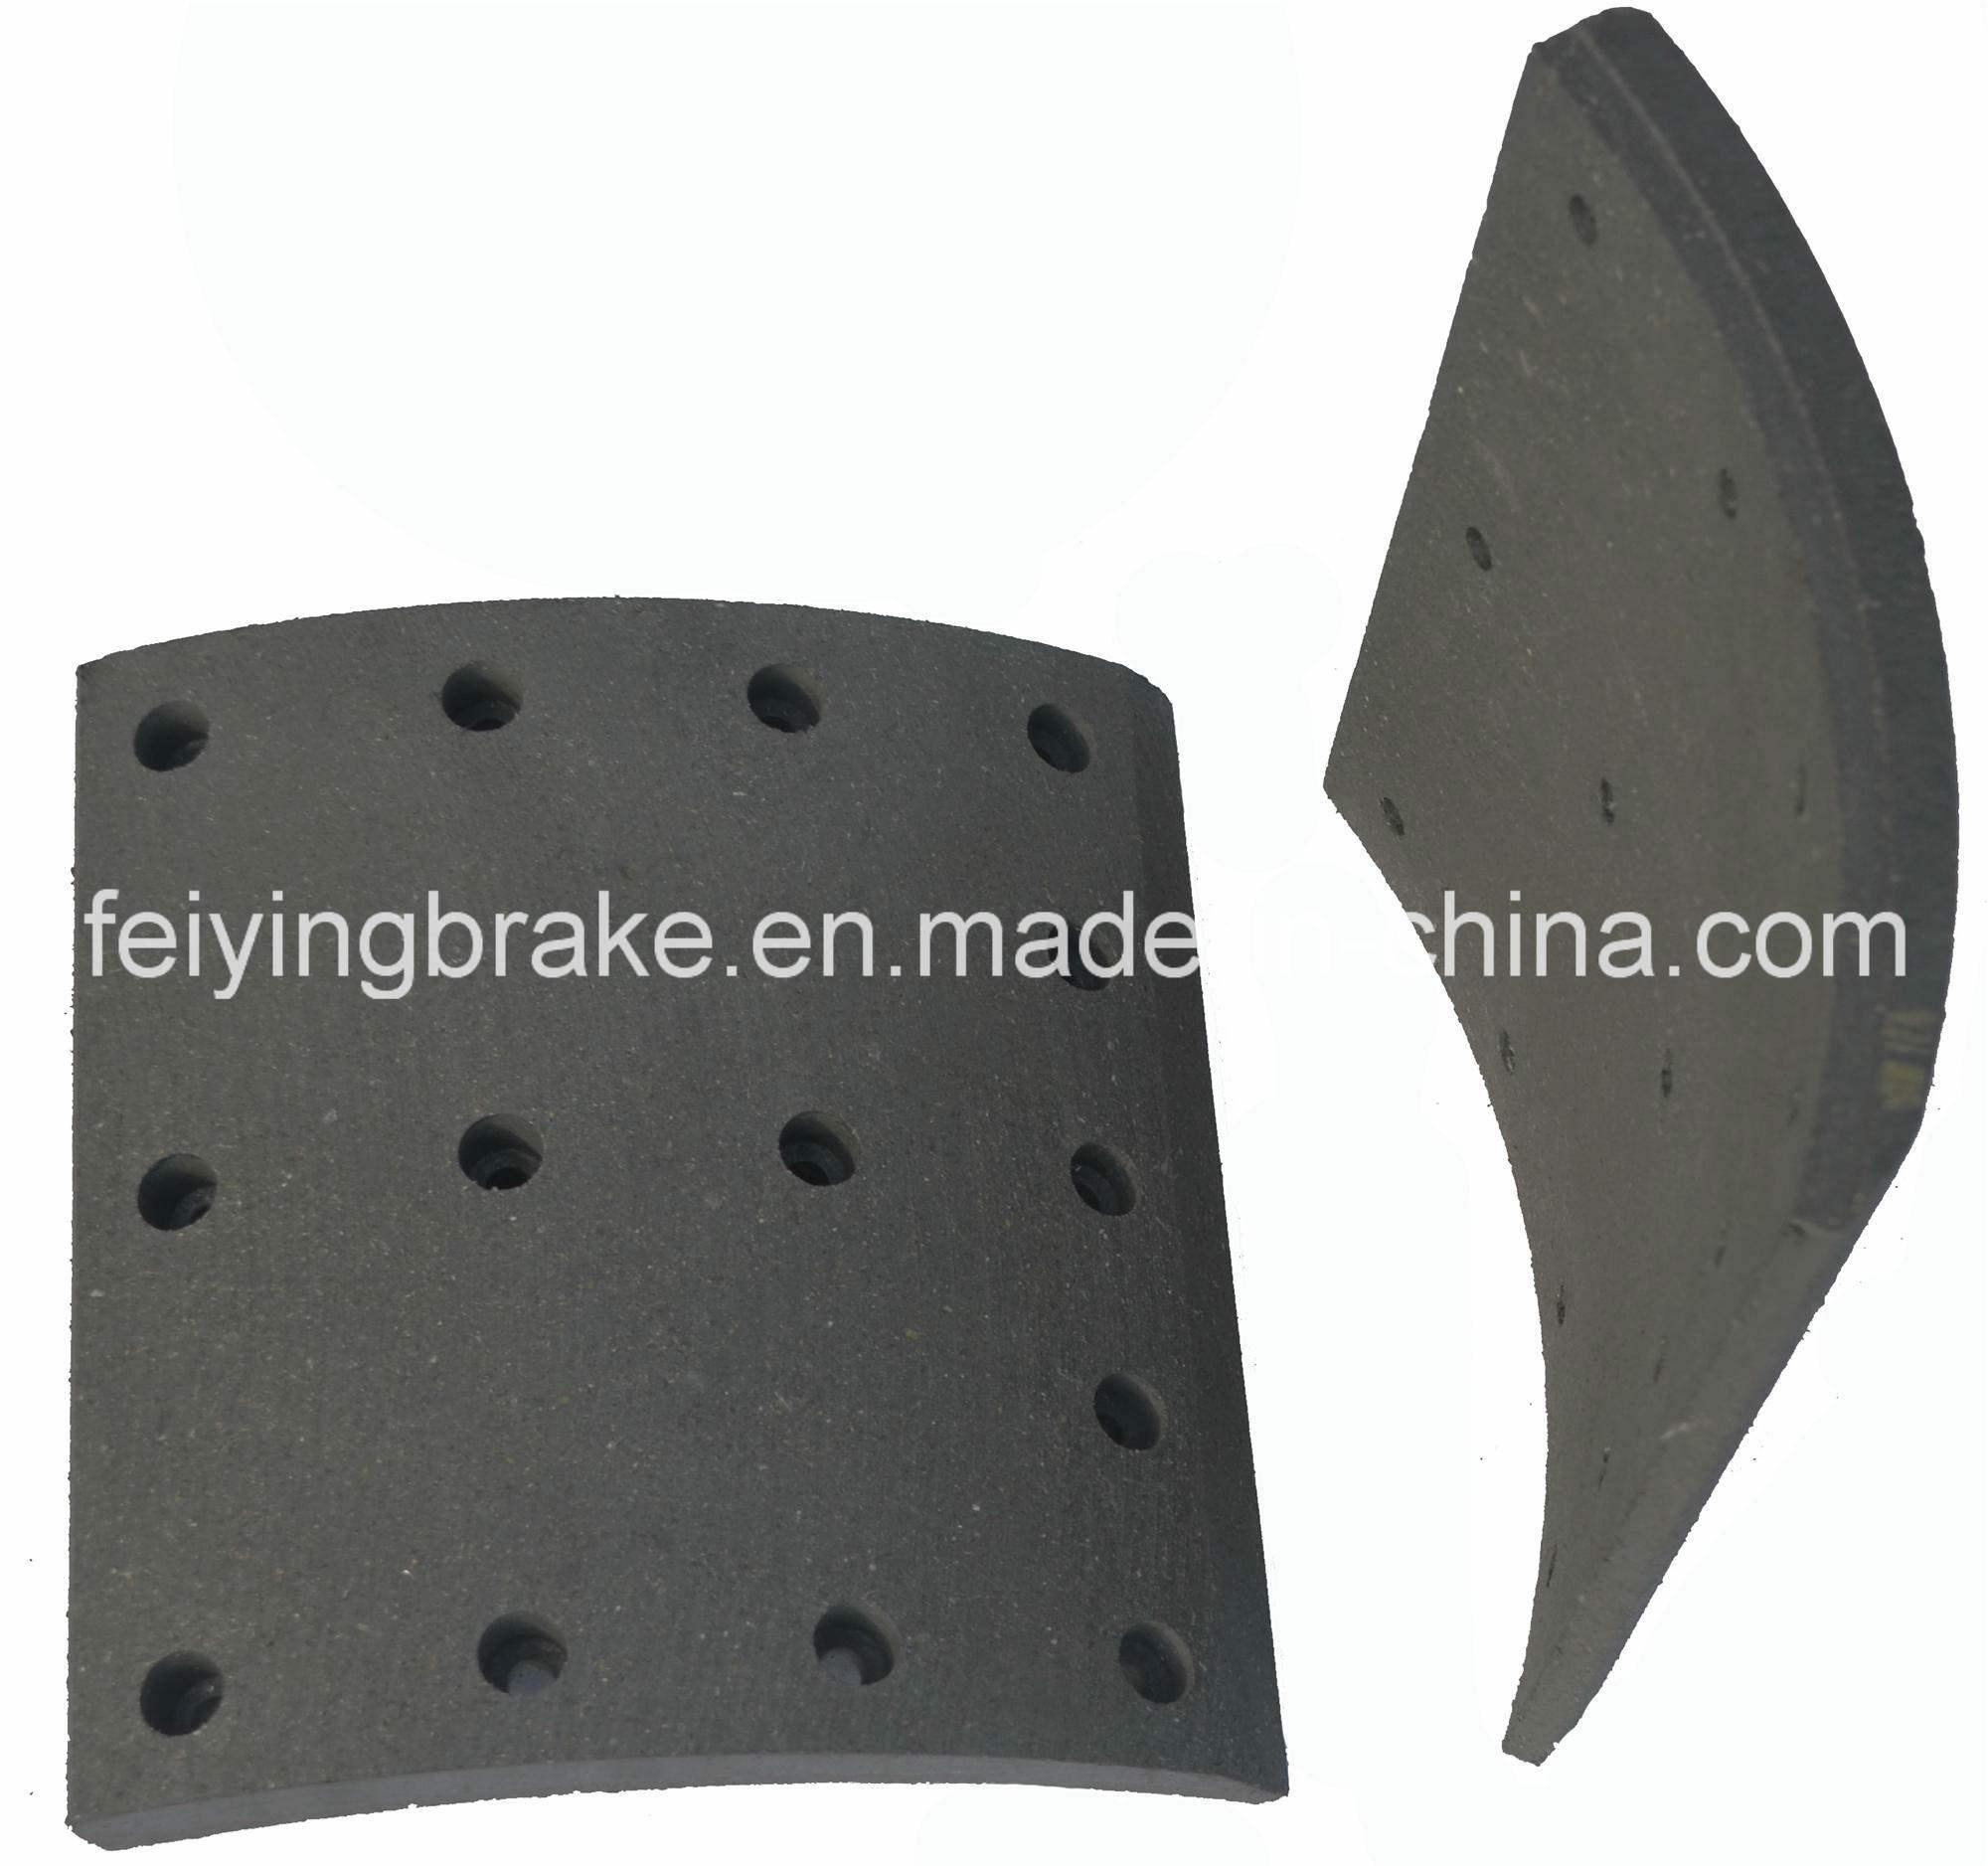 European Truck Brake Lining (WVA: 19939 BFMC VL/88/1) with Asbestos and Asbestos Free